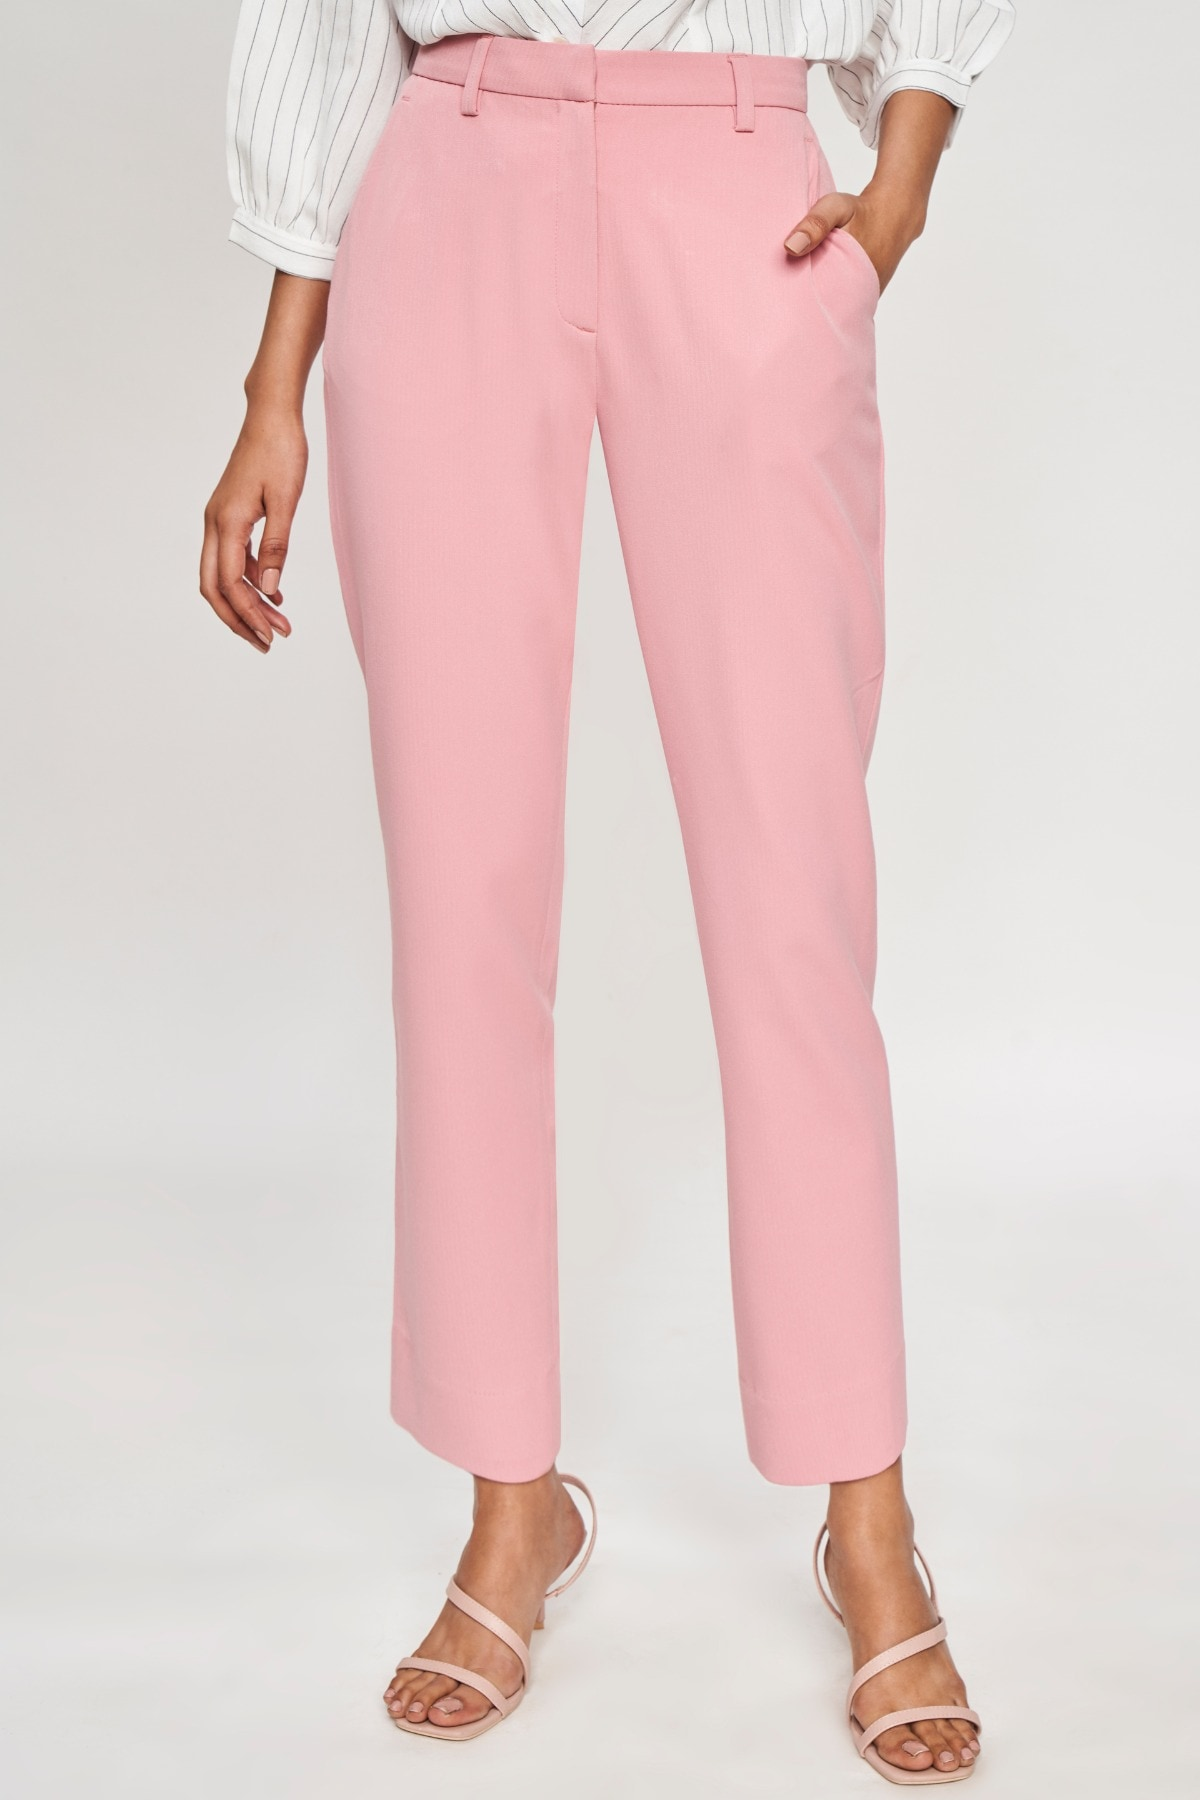 AND | Light Pink Solid  Bottom